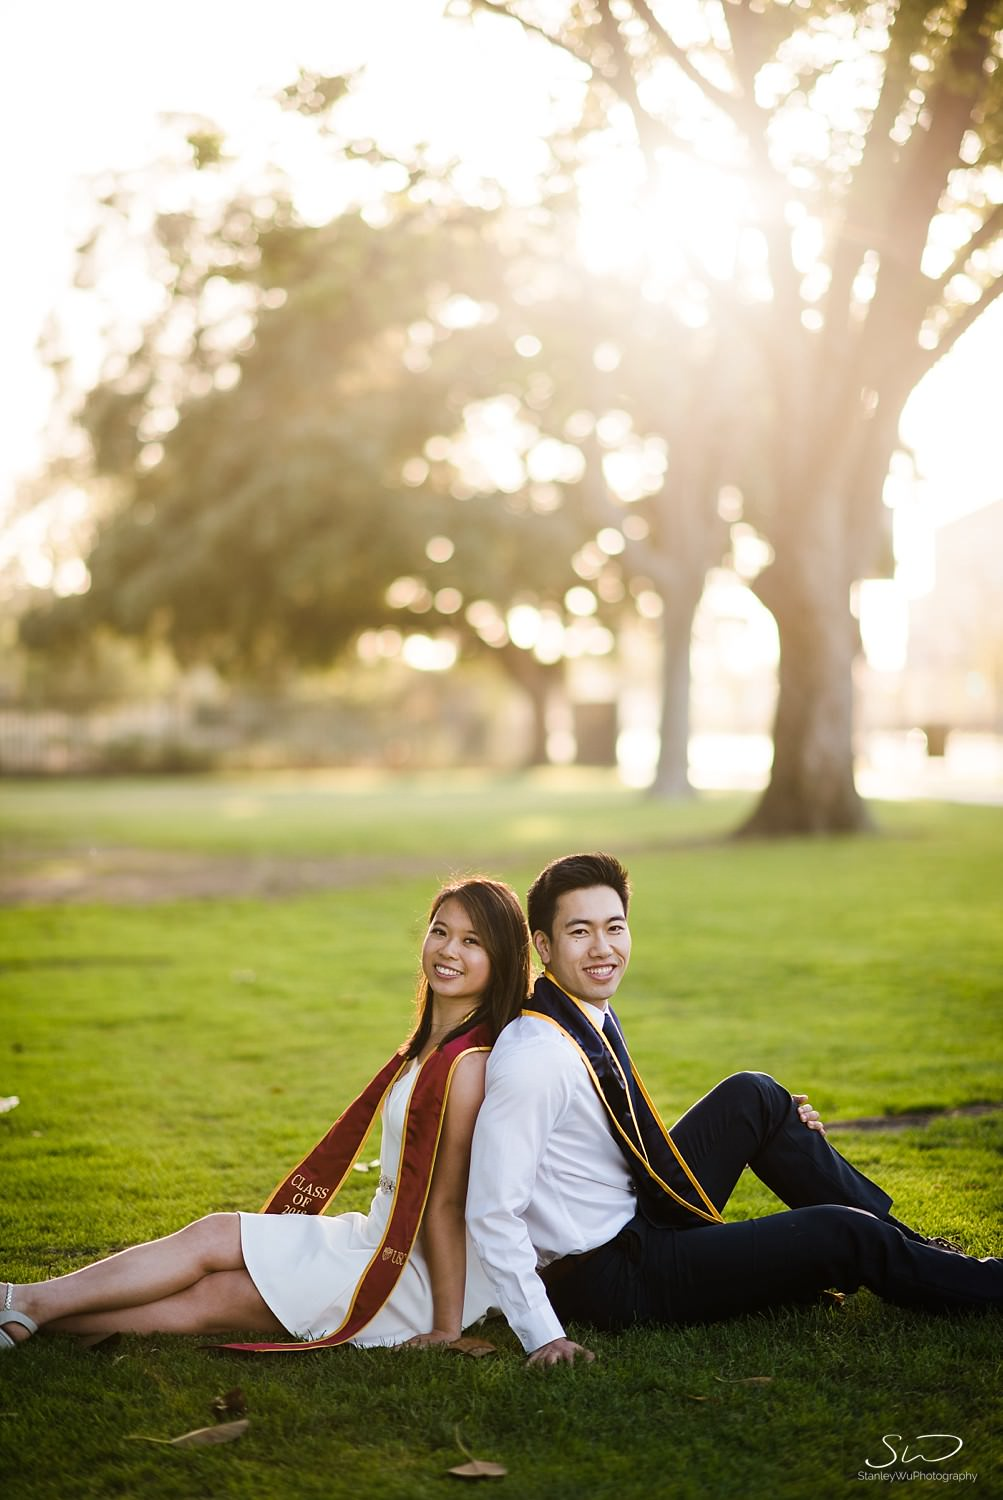 USC and UC Berkeley senior couple sitting together on grass  | Los Angeles Graduation and Senior Portrait Photographer